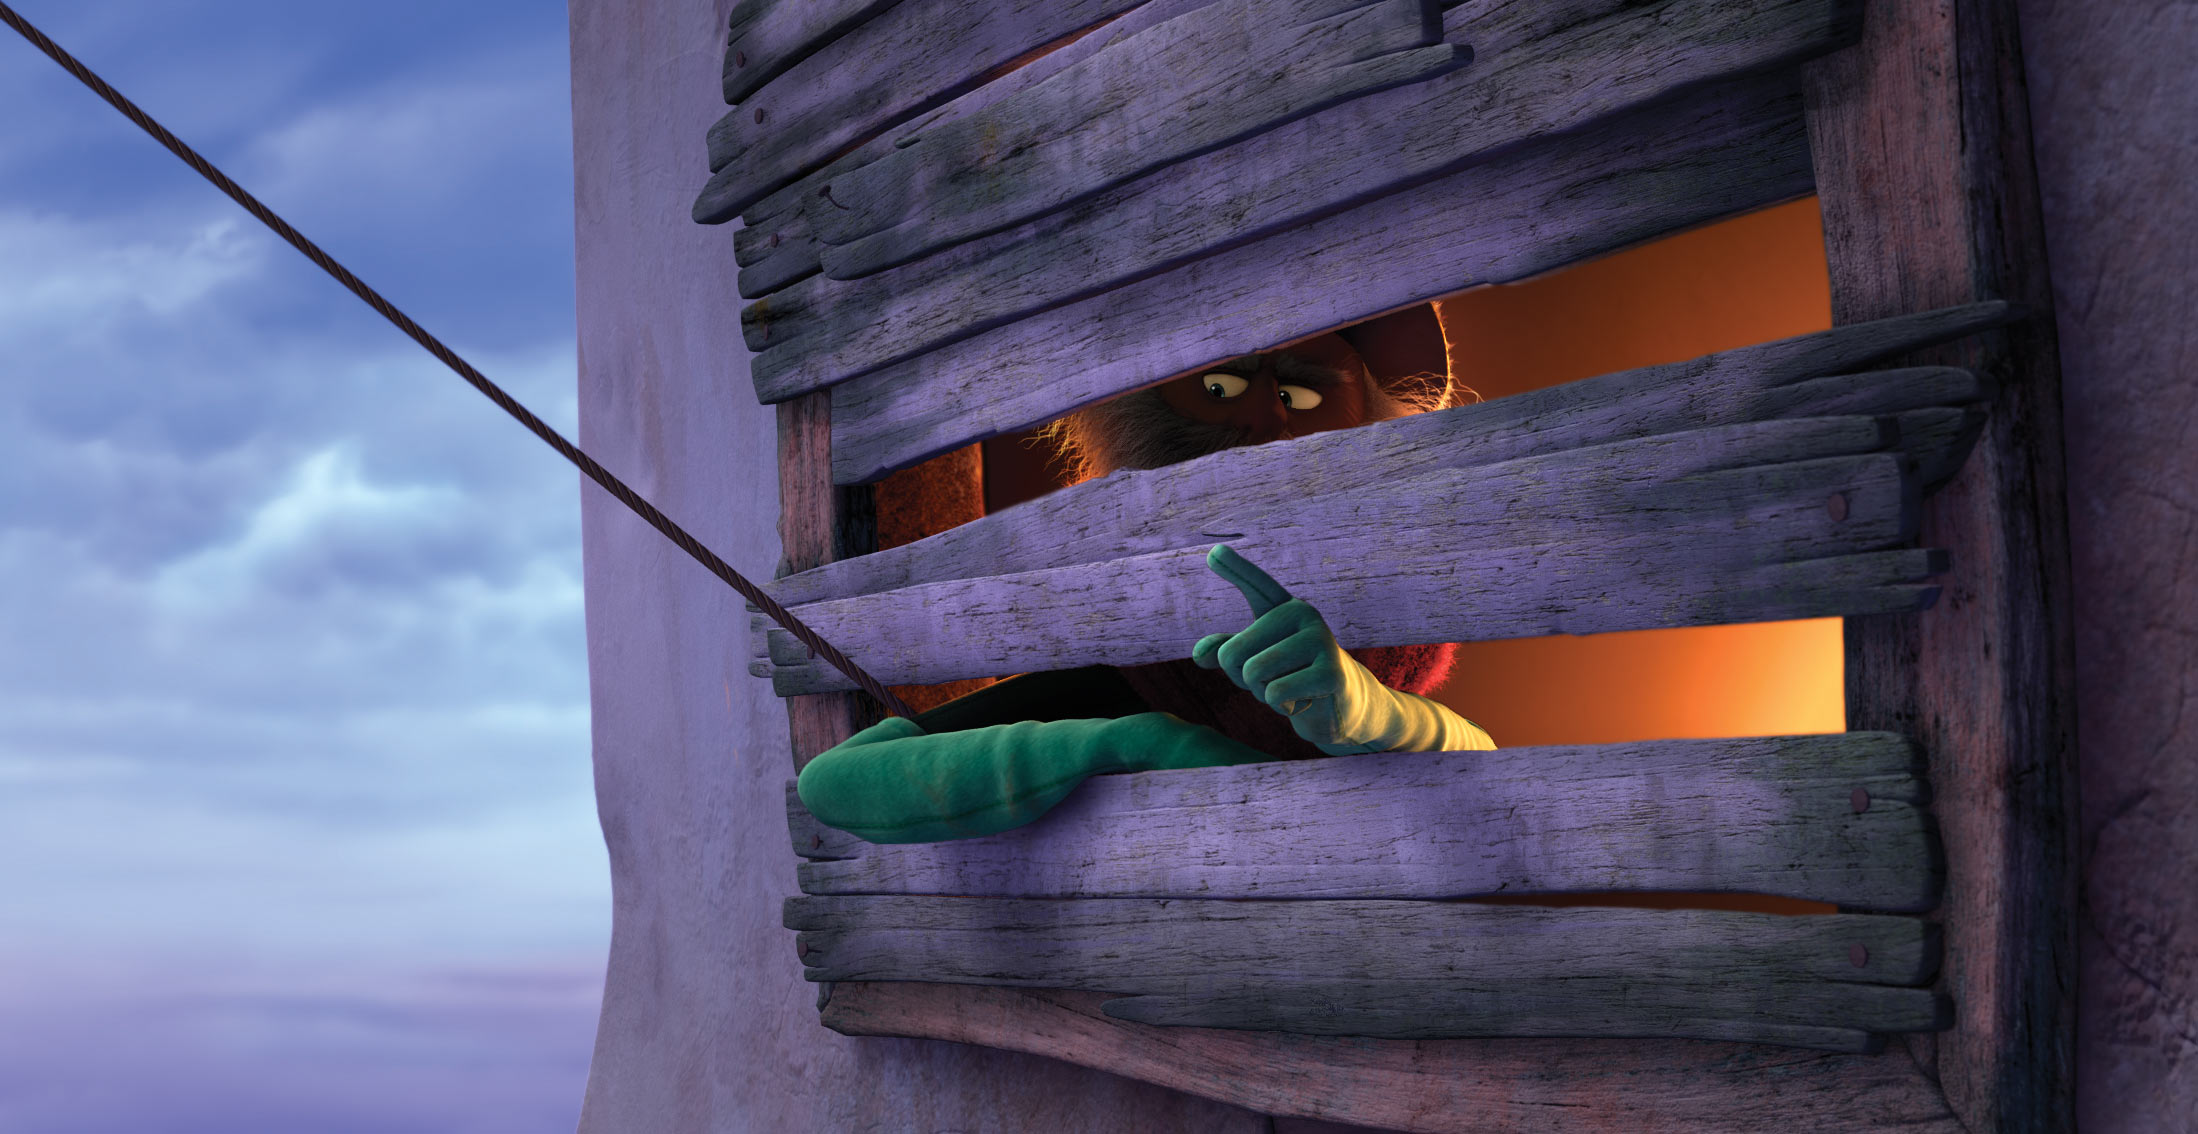 The Once-Ler from Dr. Seuss The Lorax Movie Desktop Wallpaper